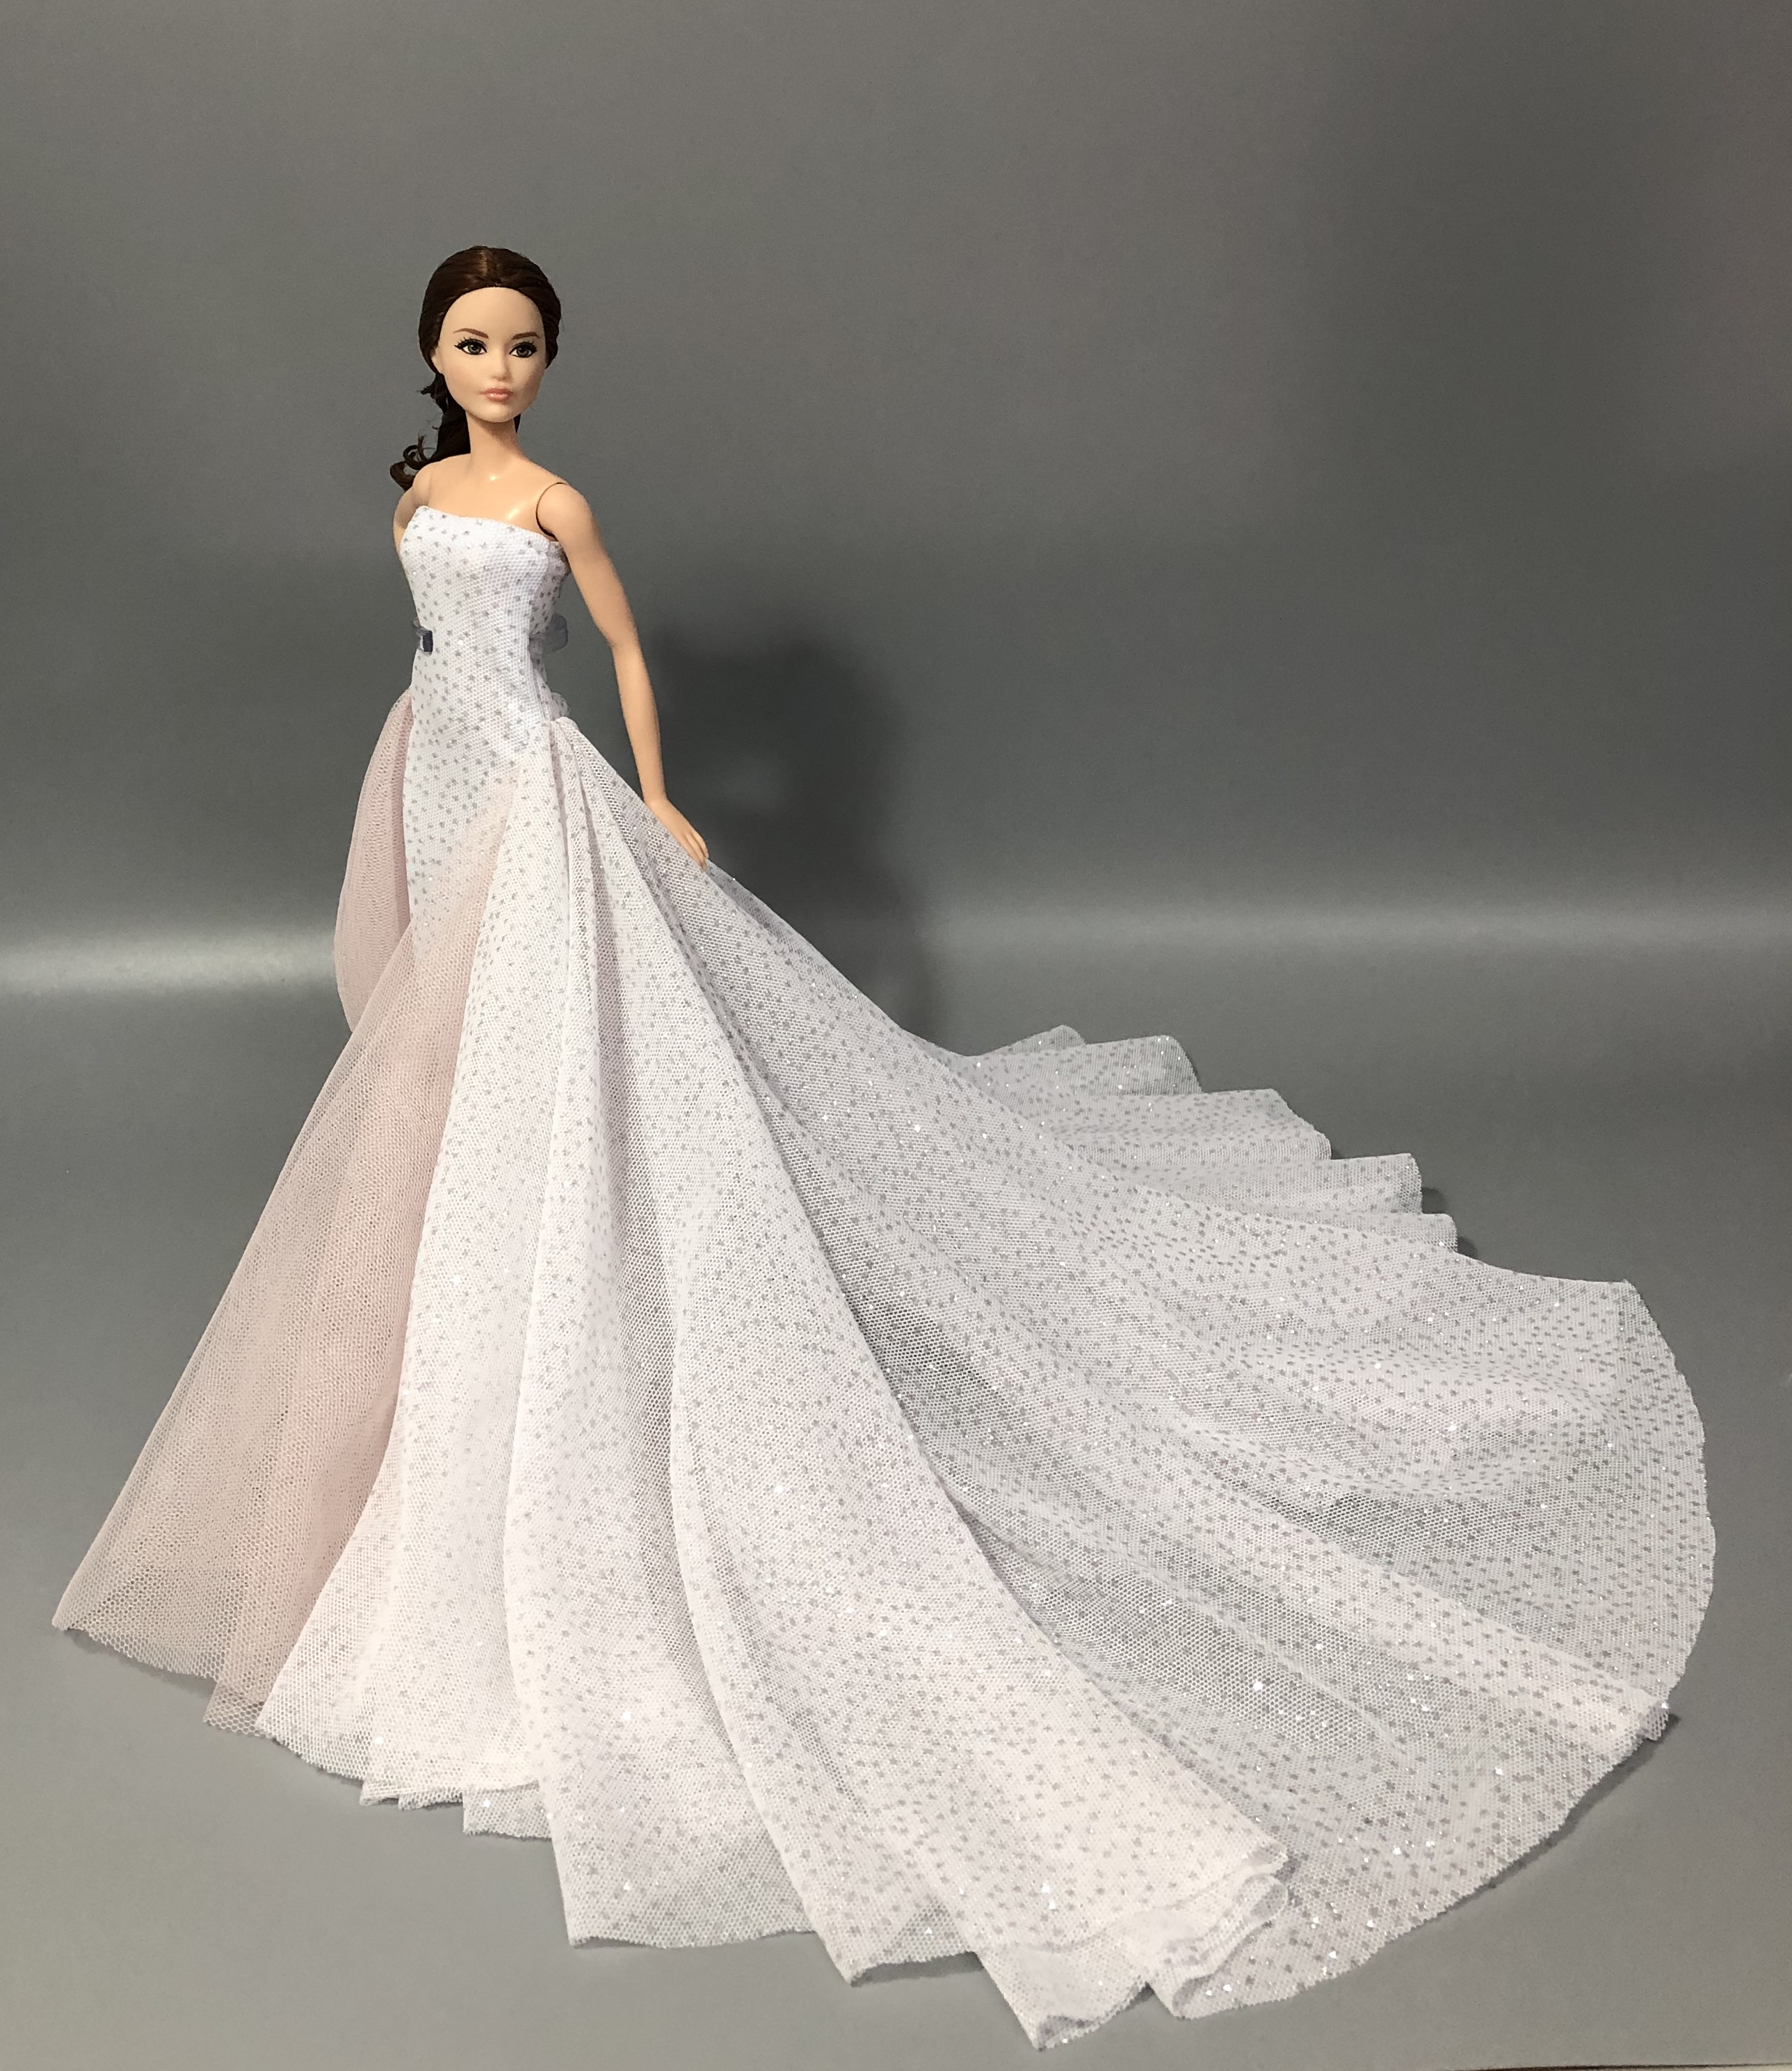 The Original For Barbie Dress Barbie Doll Clothes Wedding Dress Quality Goods Fashion Skirt Princess Dress Doll Accessories